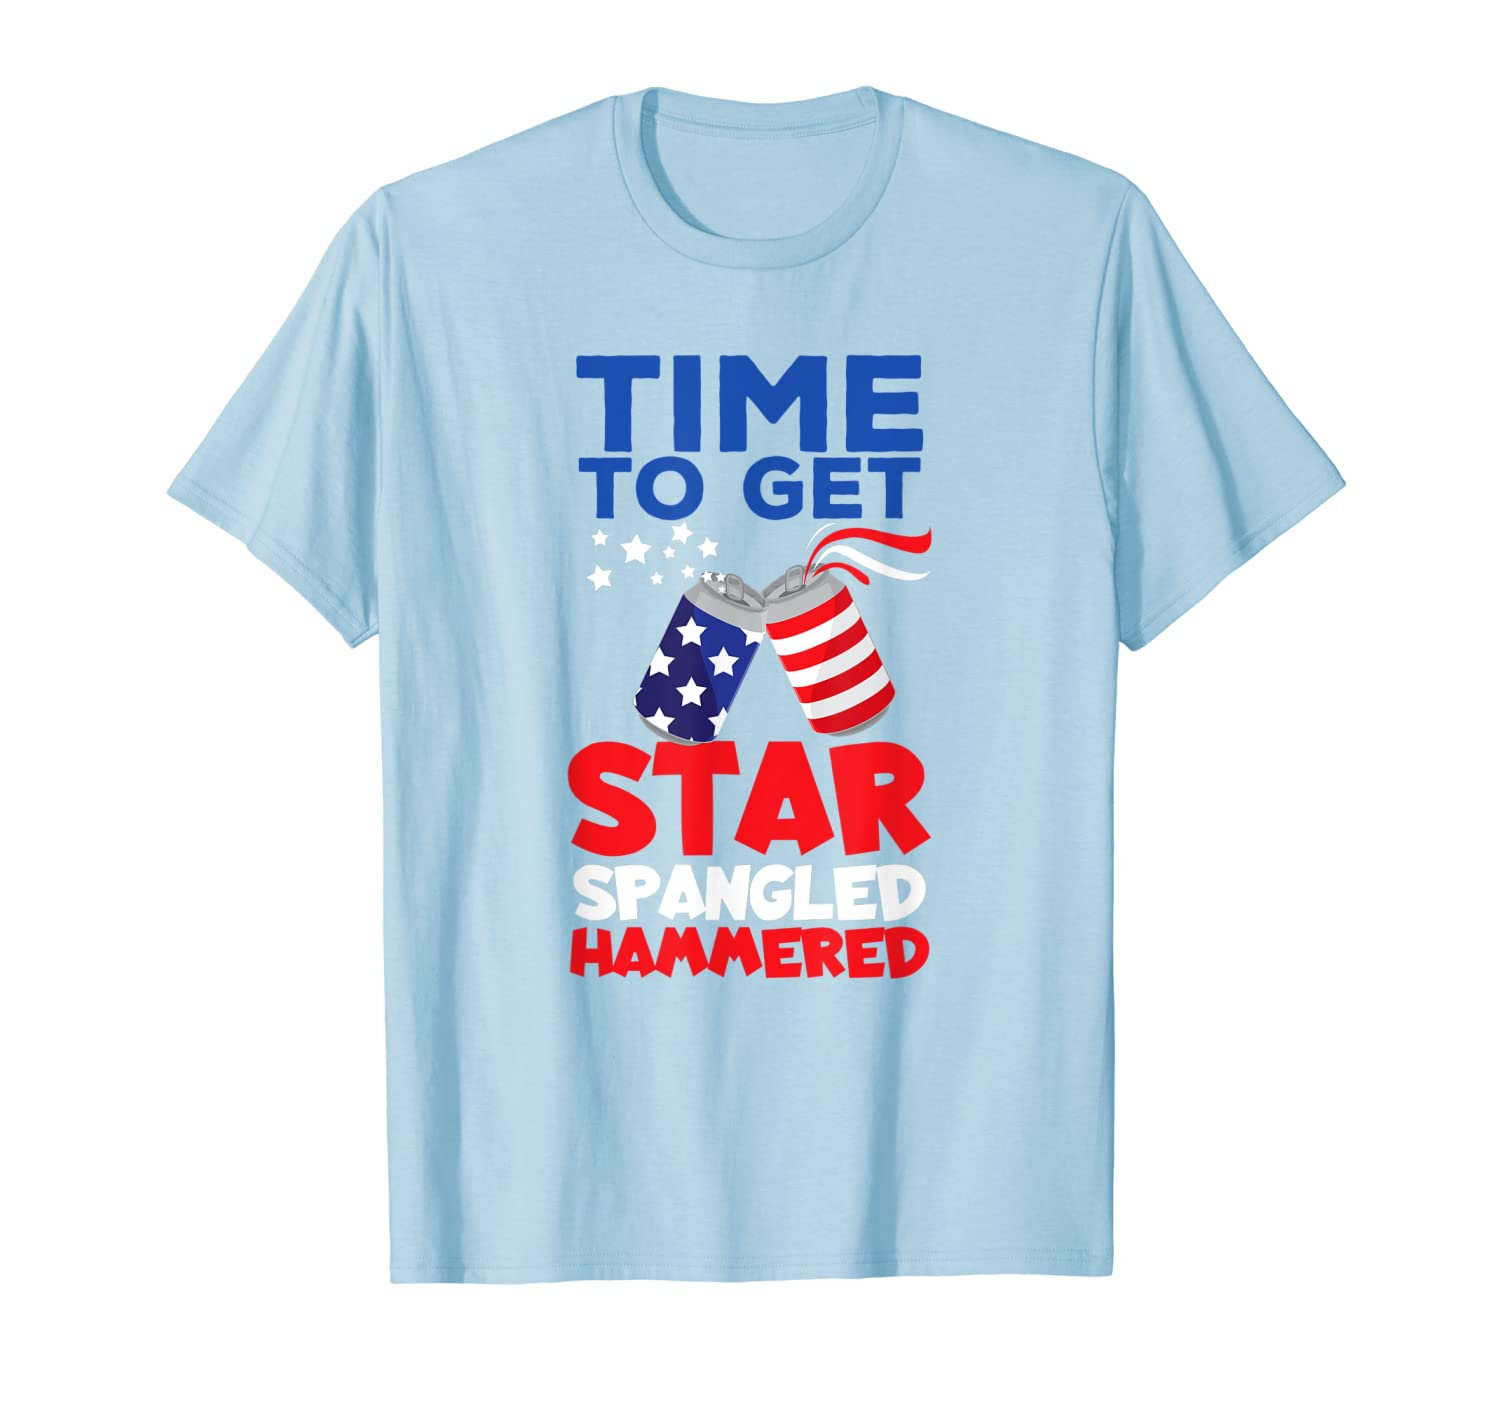 Time To Get Star Spangled Hammered Shirt America Beer Cans Unisex Tshirt